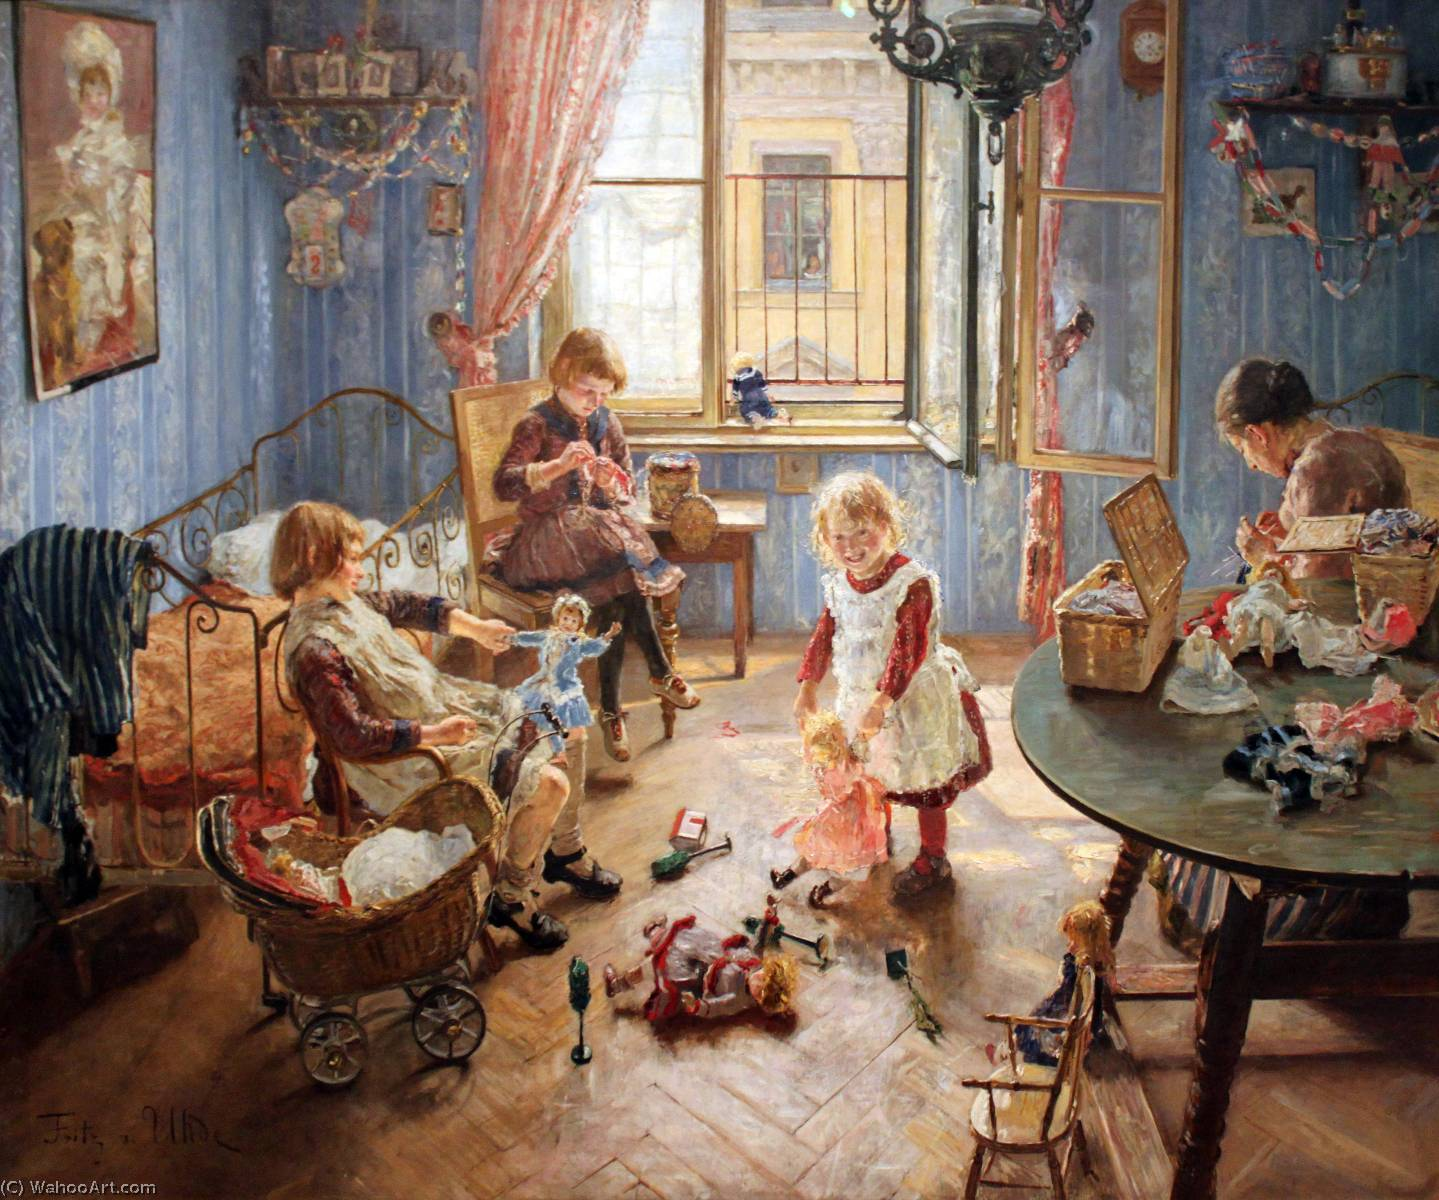 Inglês Children's Creche deutsch die kinderstube русский питомник, 1889 por Fritz Von Uhde (1848-1911)